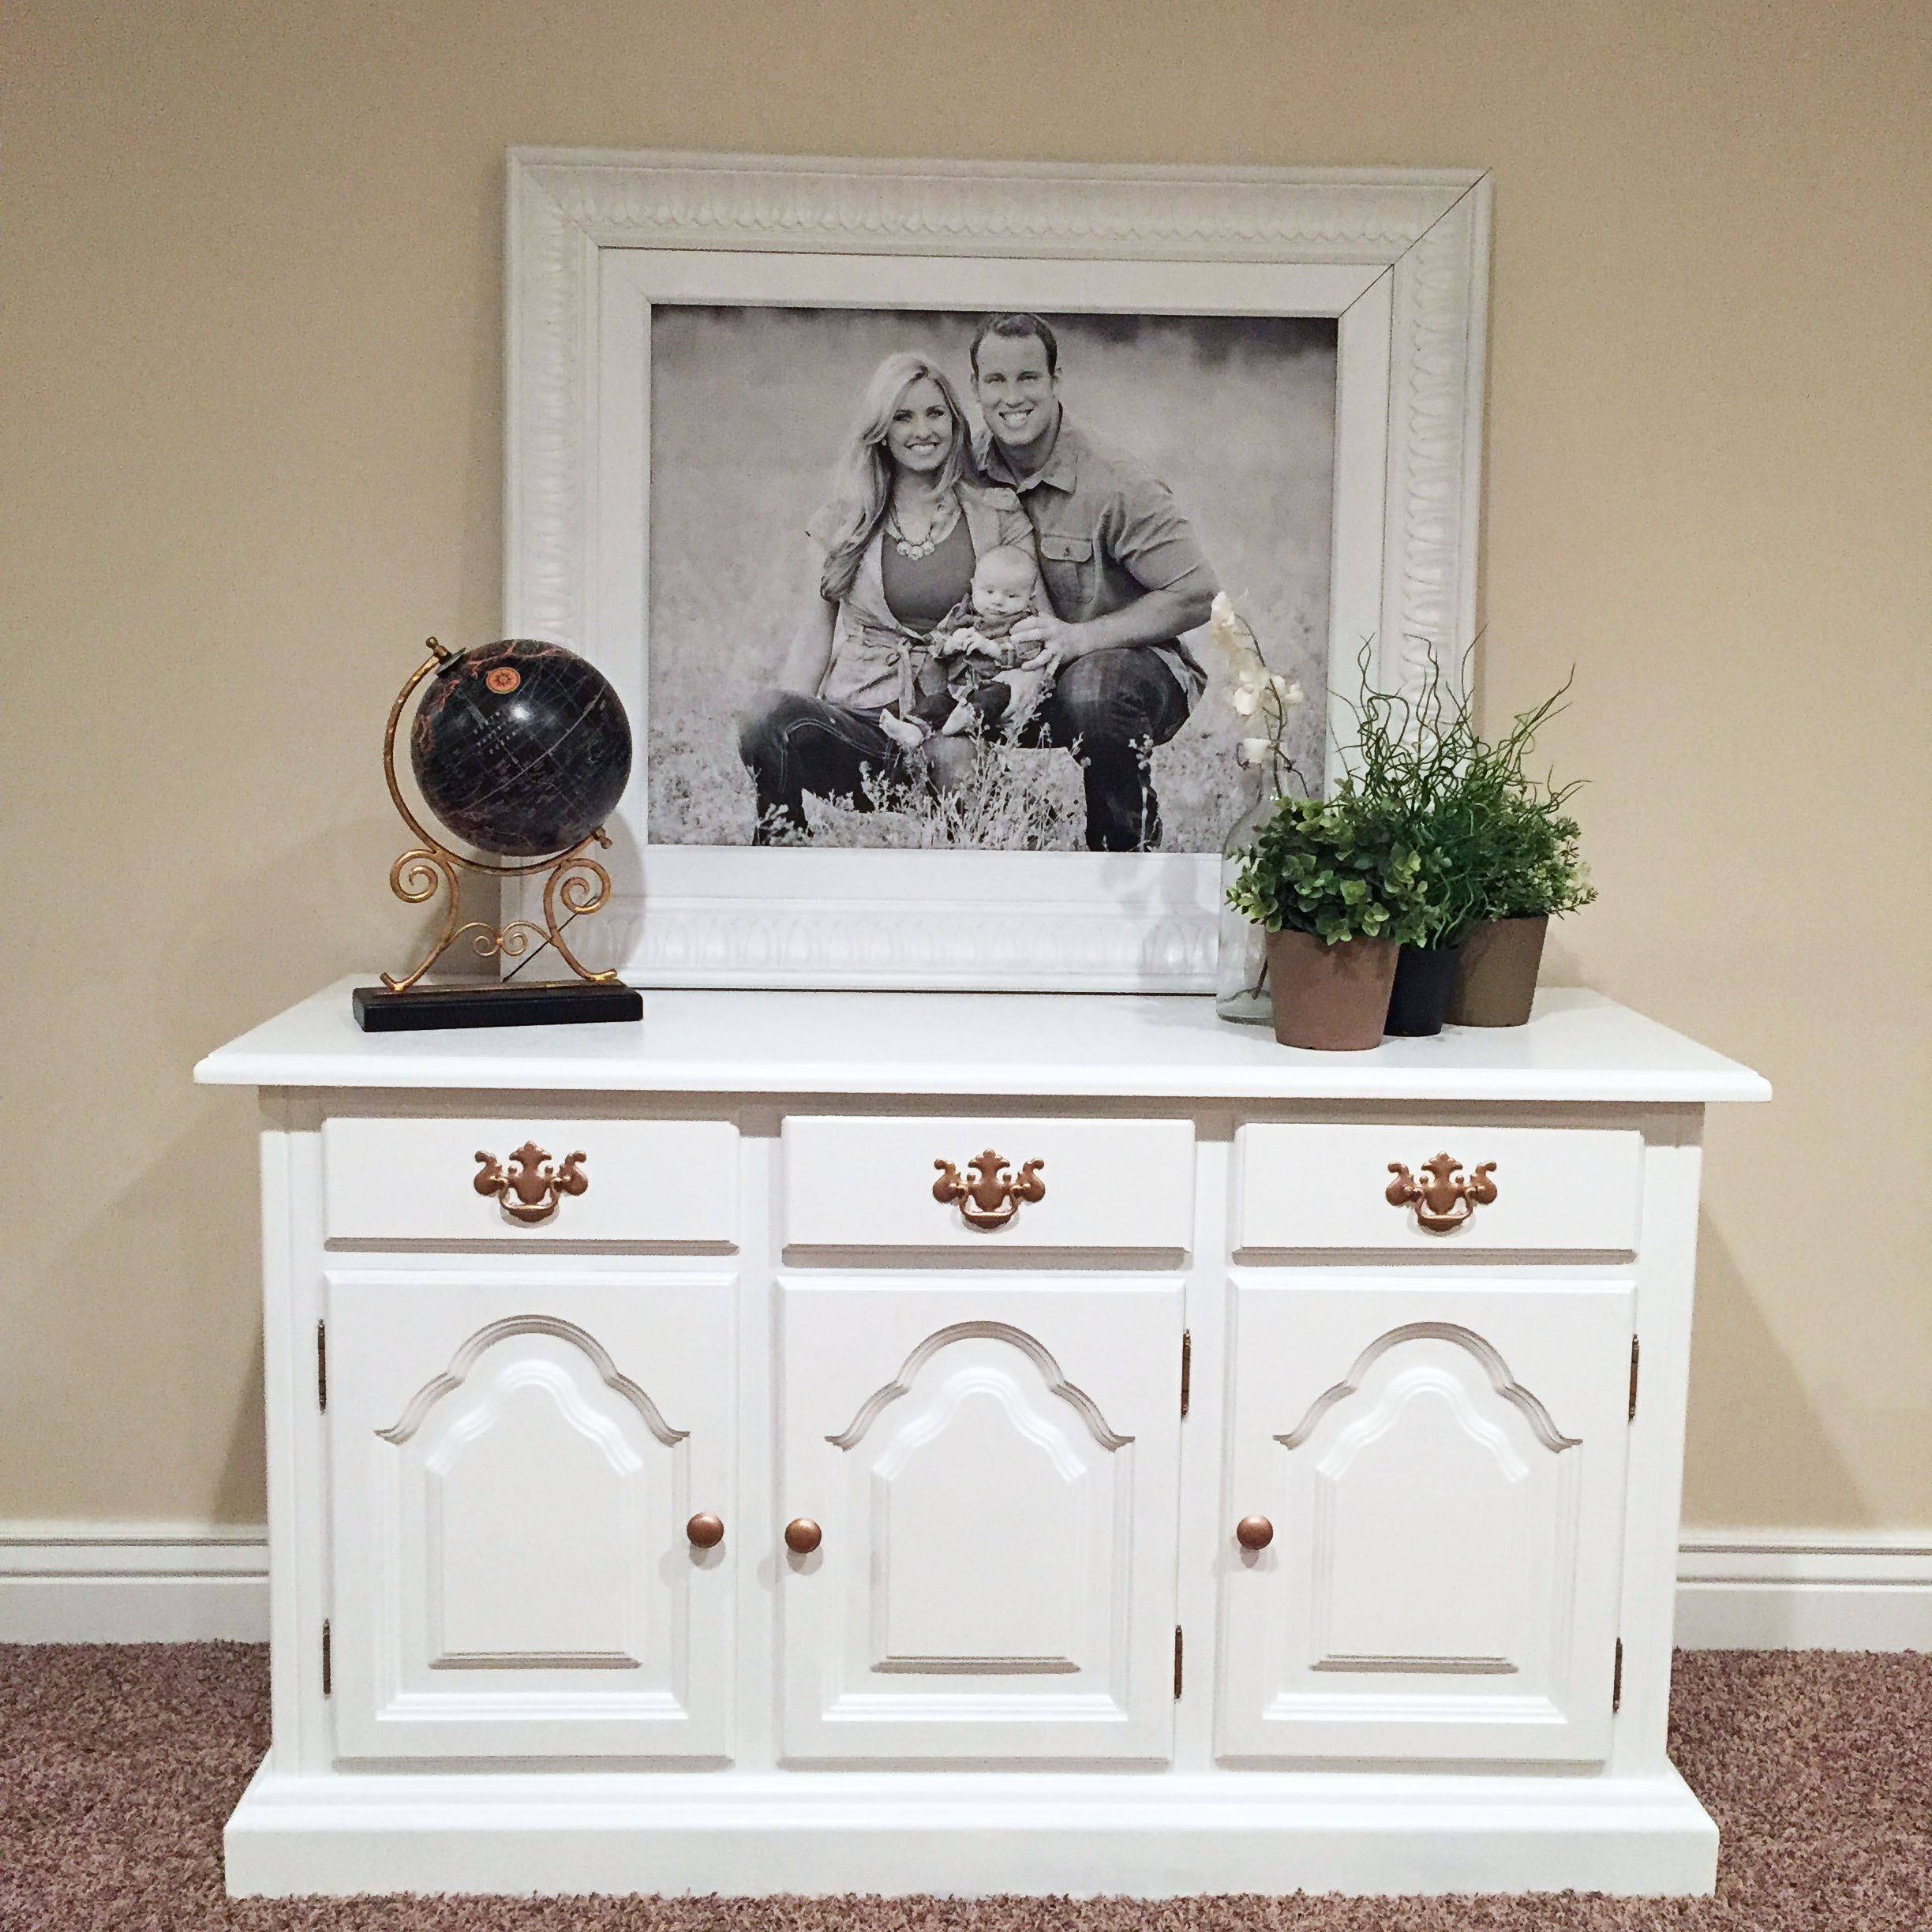 Buffet / dresser upcycle. Love the spray painted rose gold hardware! | Upcycled Buffet by popular Utah lifestyle blogger, Kara Metta: image of a white buffet with a black globe, faux plants, and a large black and white family photo on it.